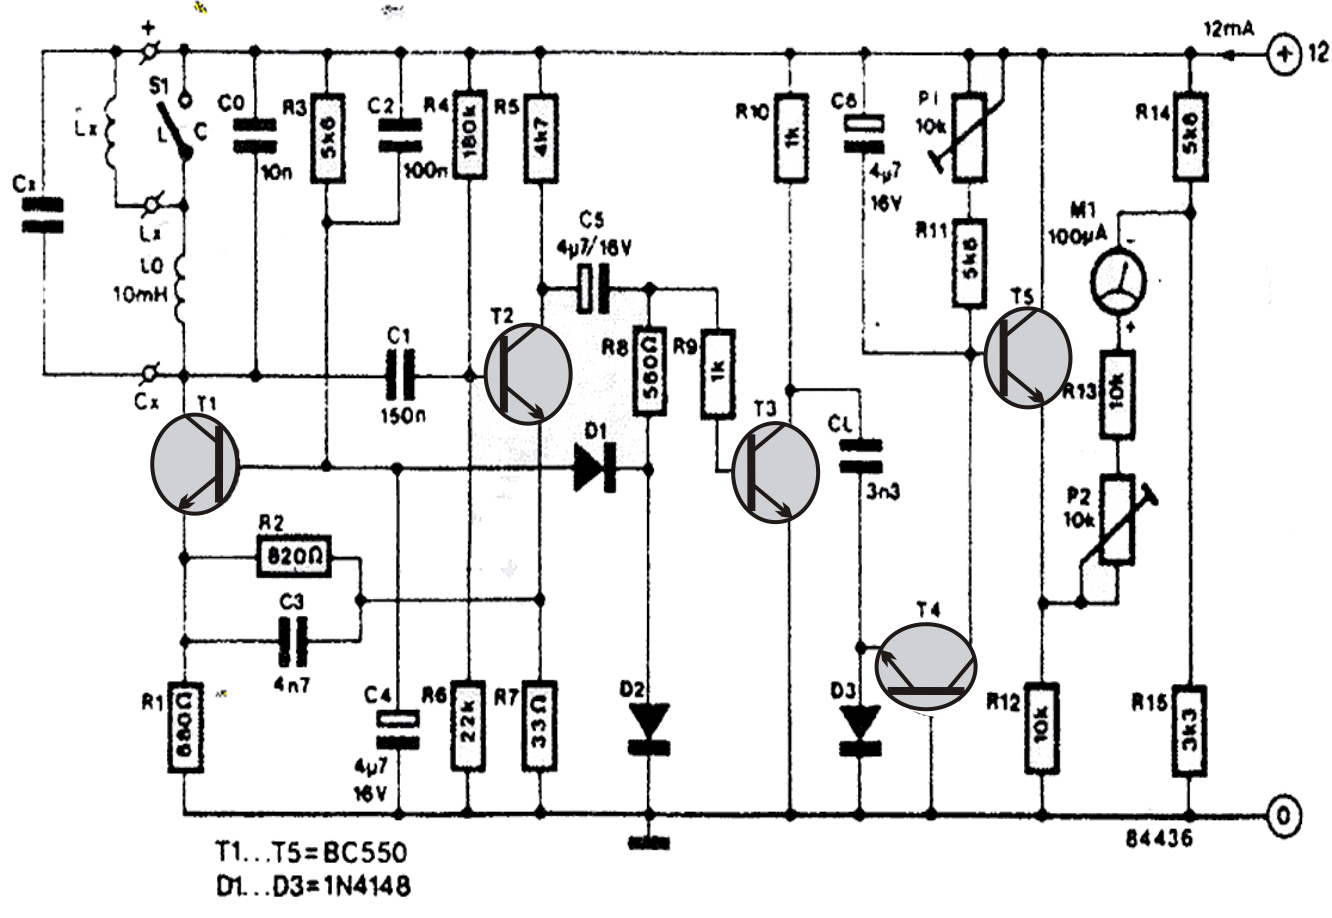 function generator capacitance and inductance meter schematic